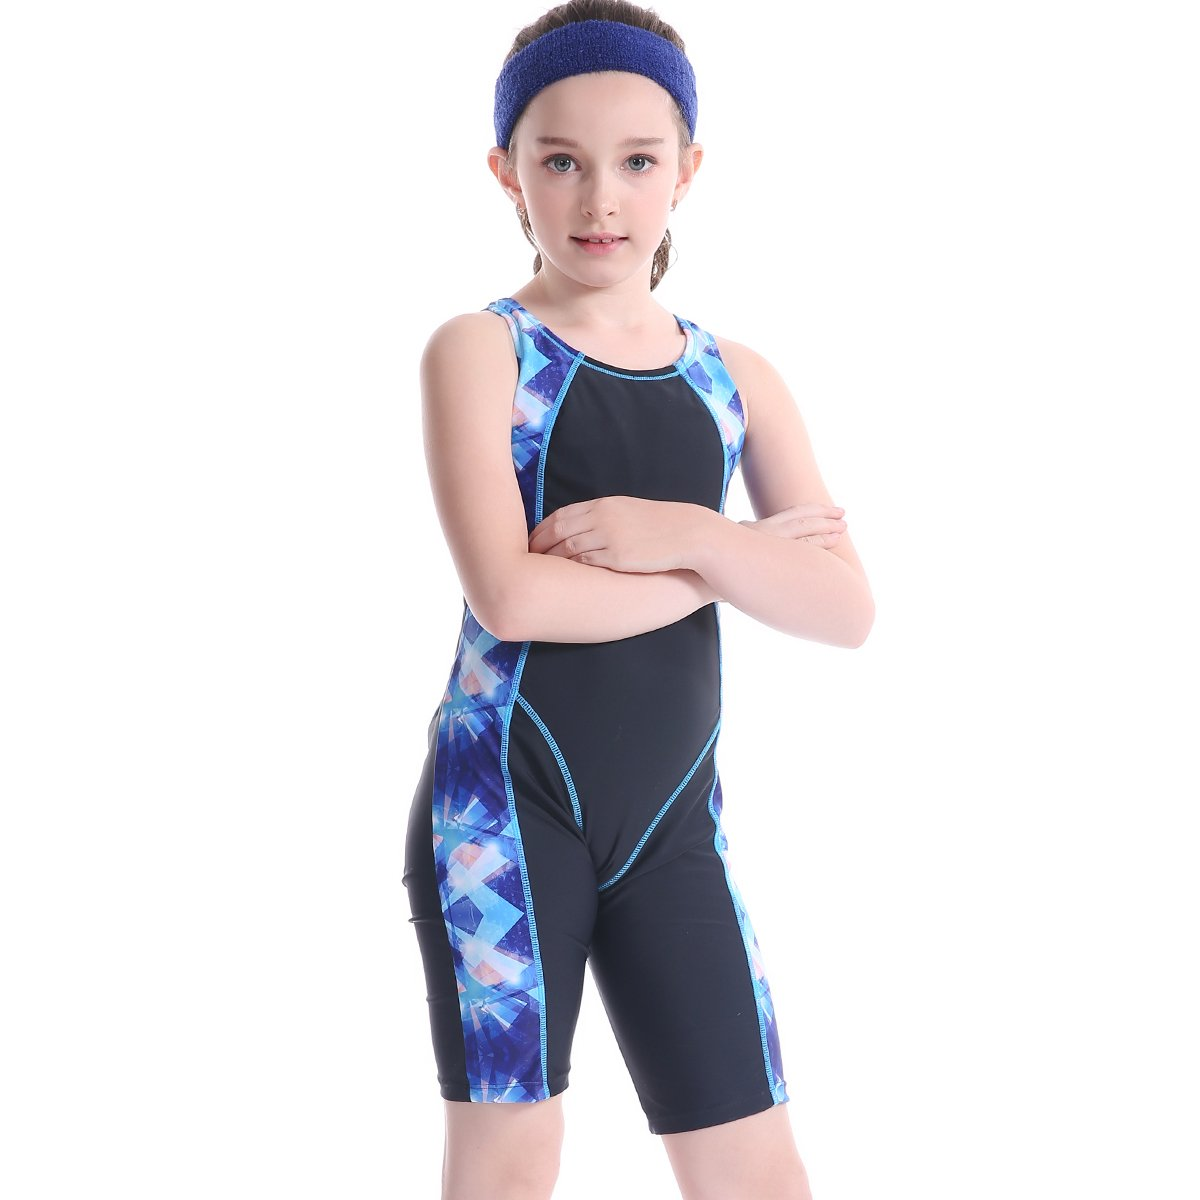 TenMet Girl's Anti UV Sun Protection Swimsuit Swimwear Surfing Diving Training Pro Competition Rash Guard